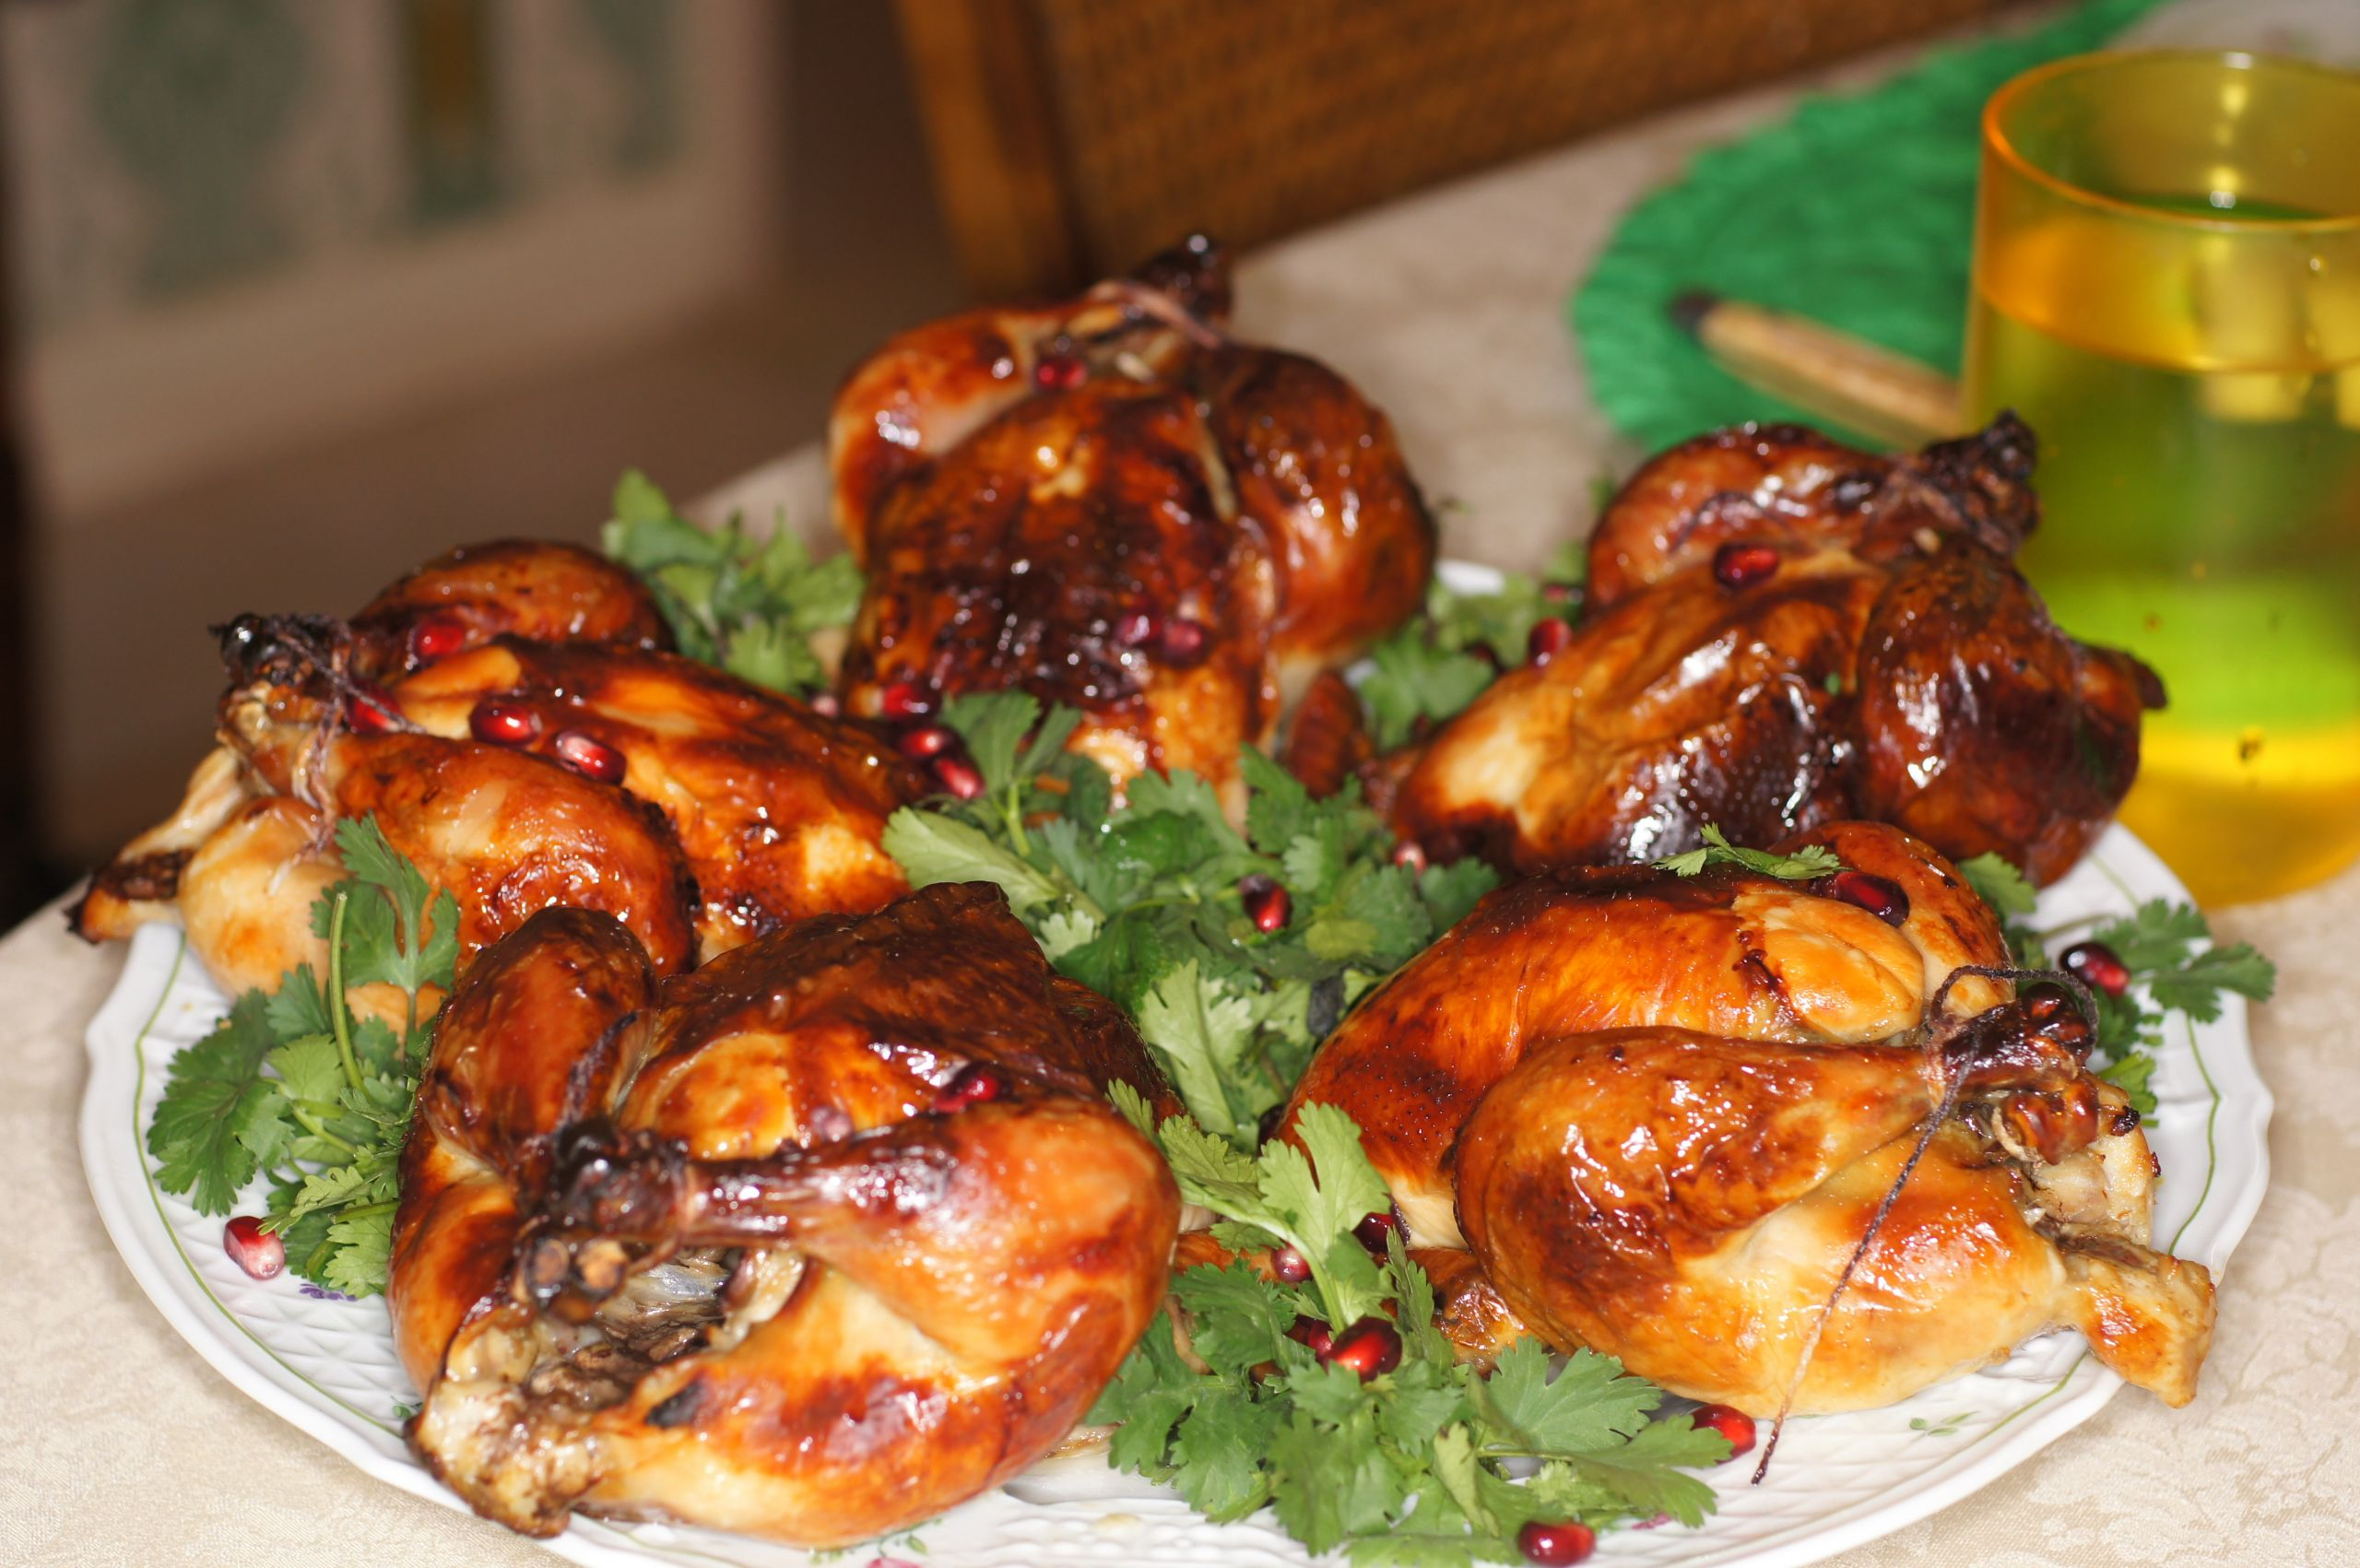 Roasted Cornish Game Hens Recipes  Roasted Brined Cornish Game Hens with Pomegranate Sauce